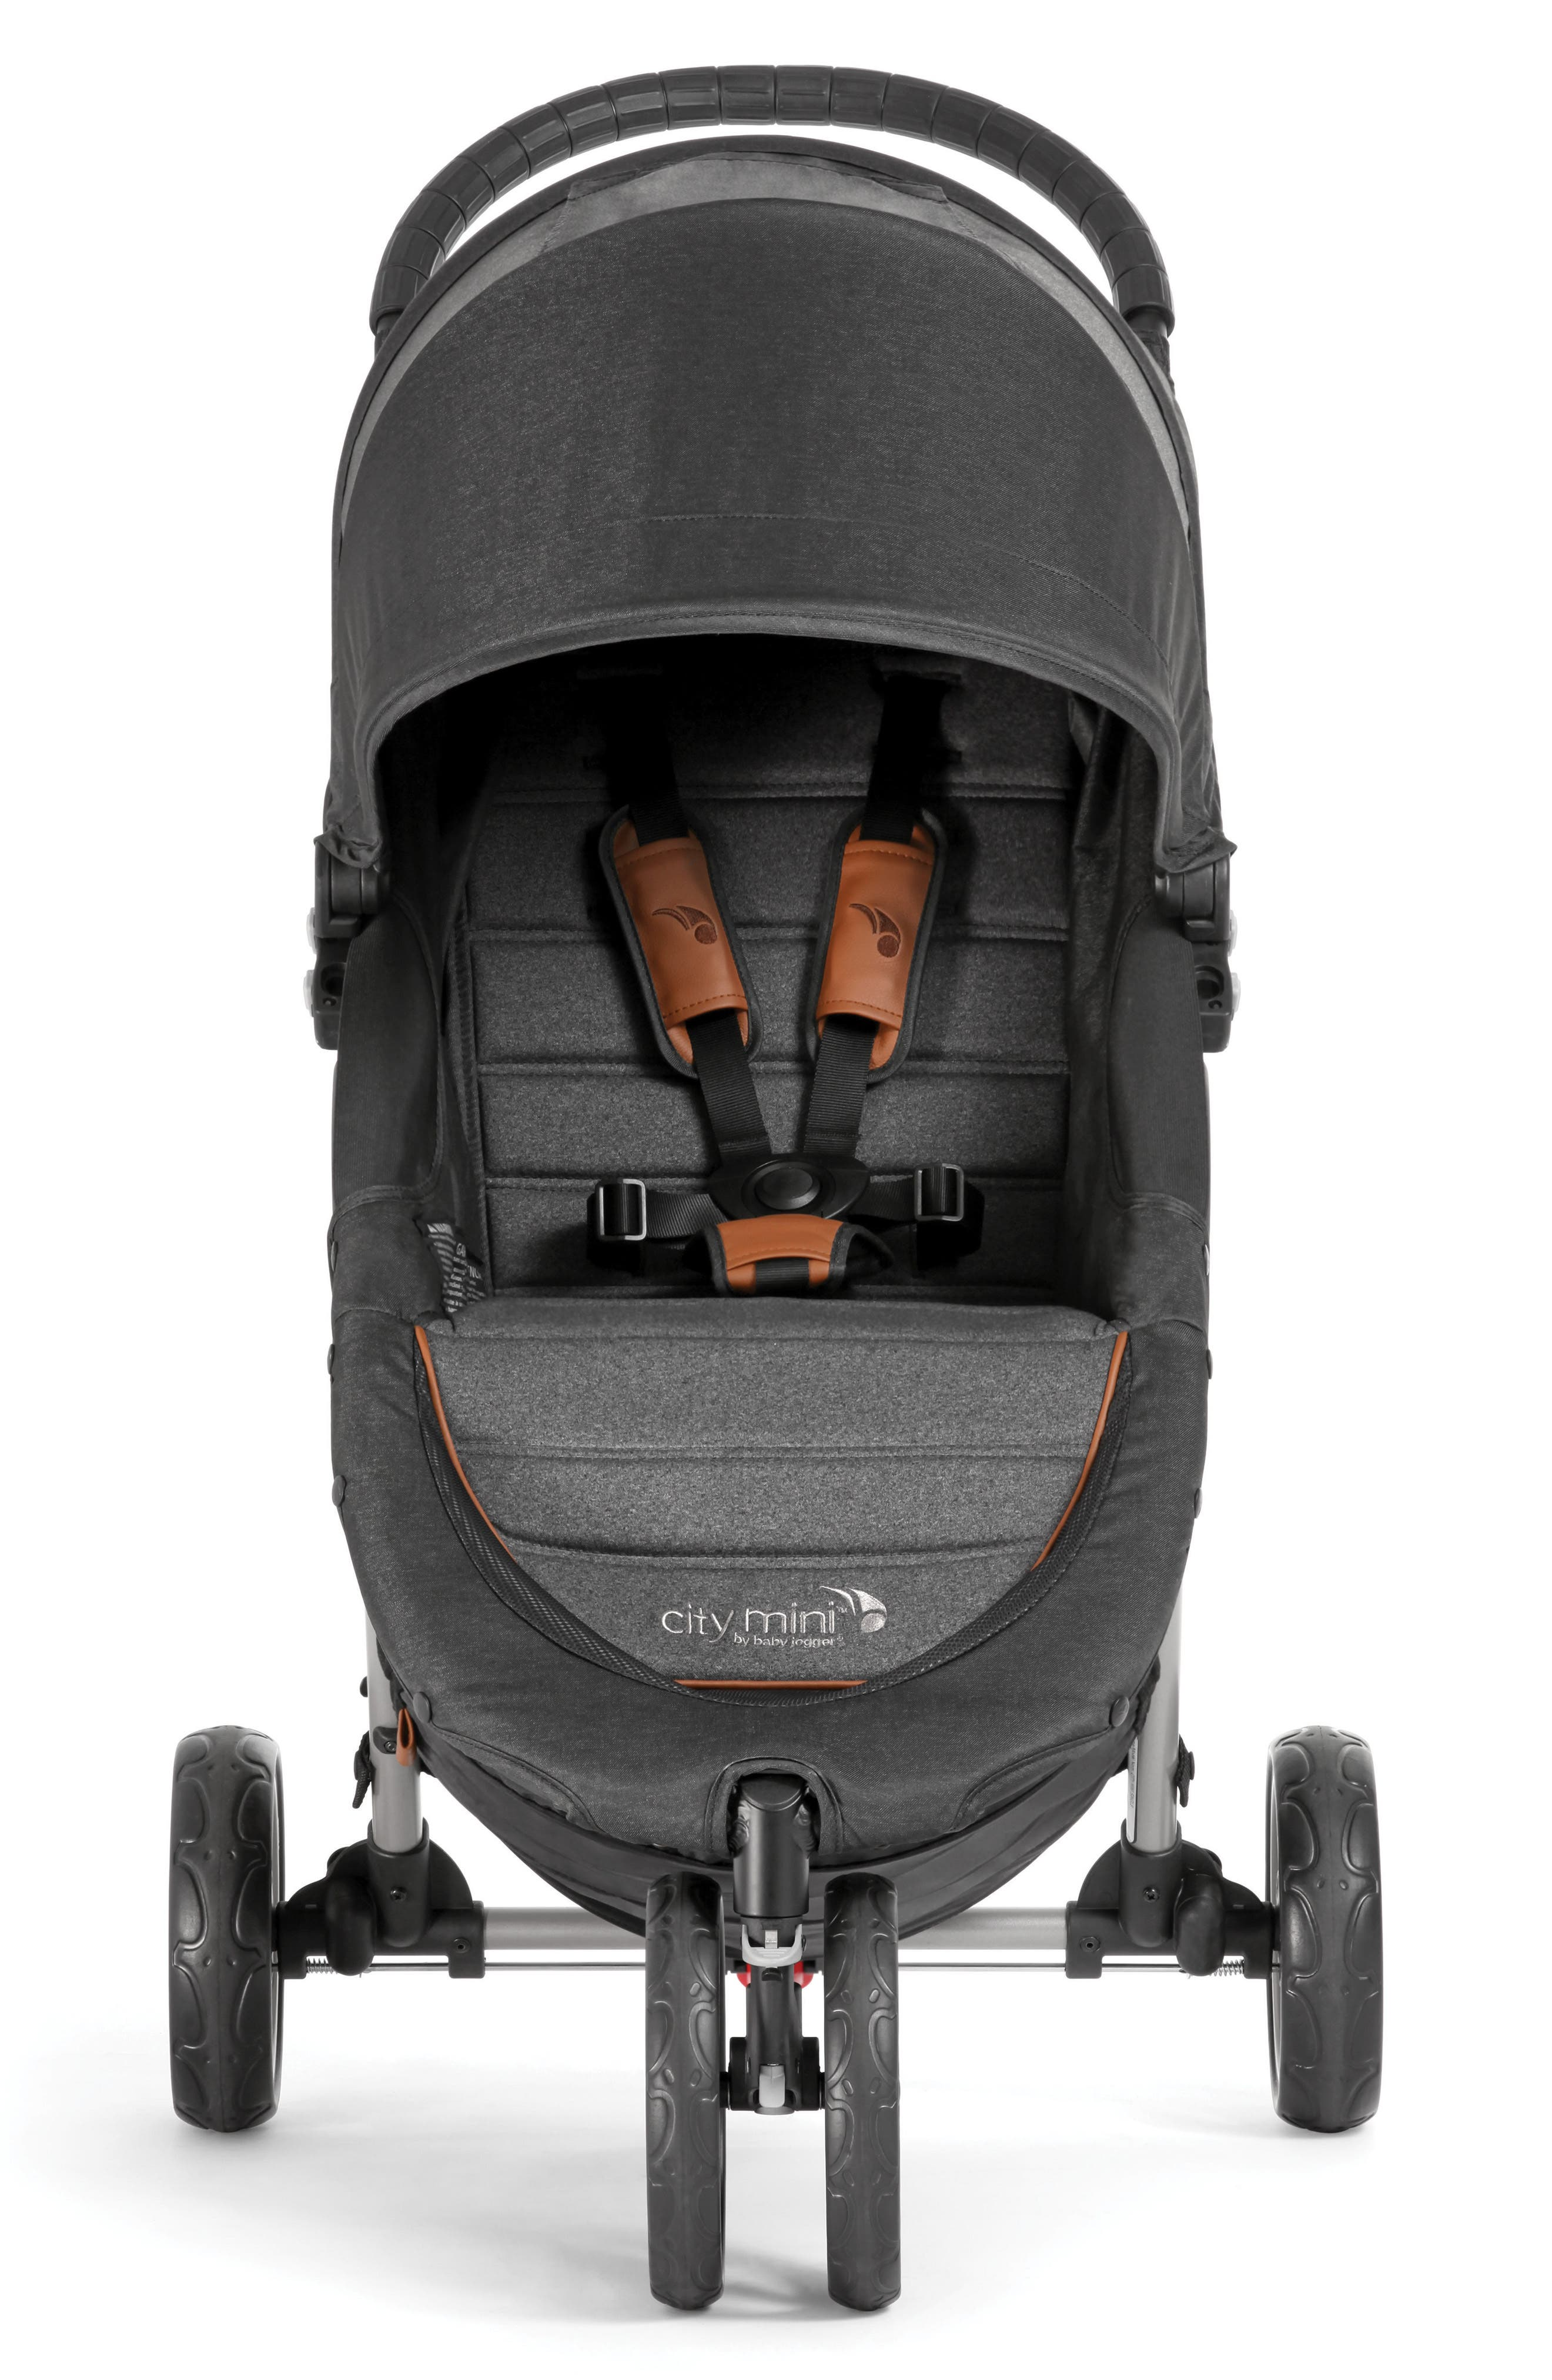 City Mini<sup>®</sup> 2018 Special Edition 10-Year Anniversary Stroller,                             Main thumbnail 1, color,                             020